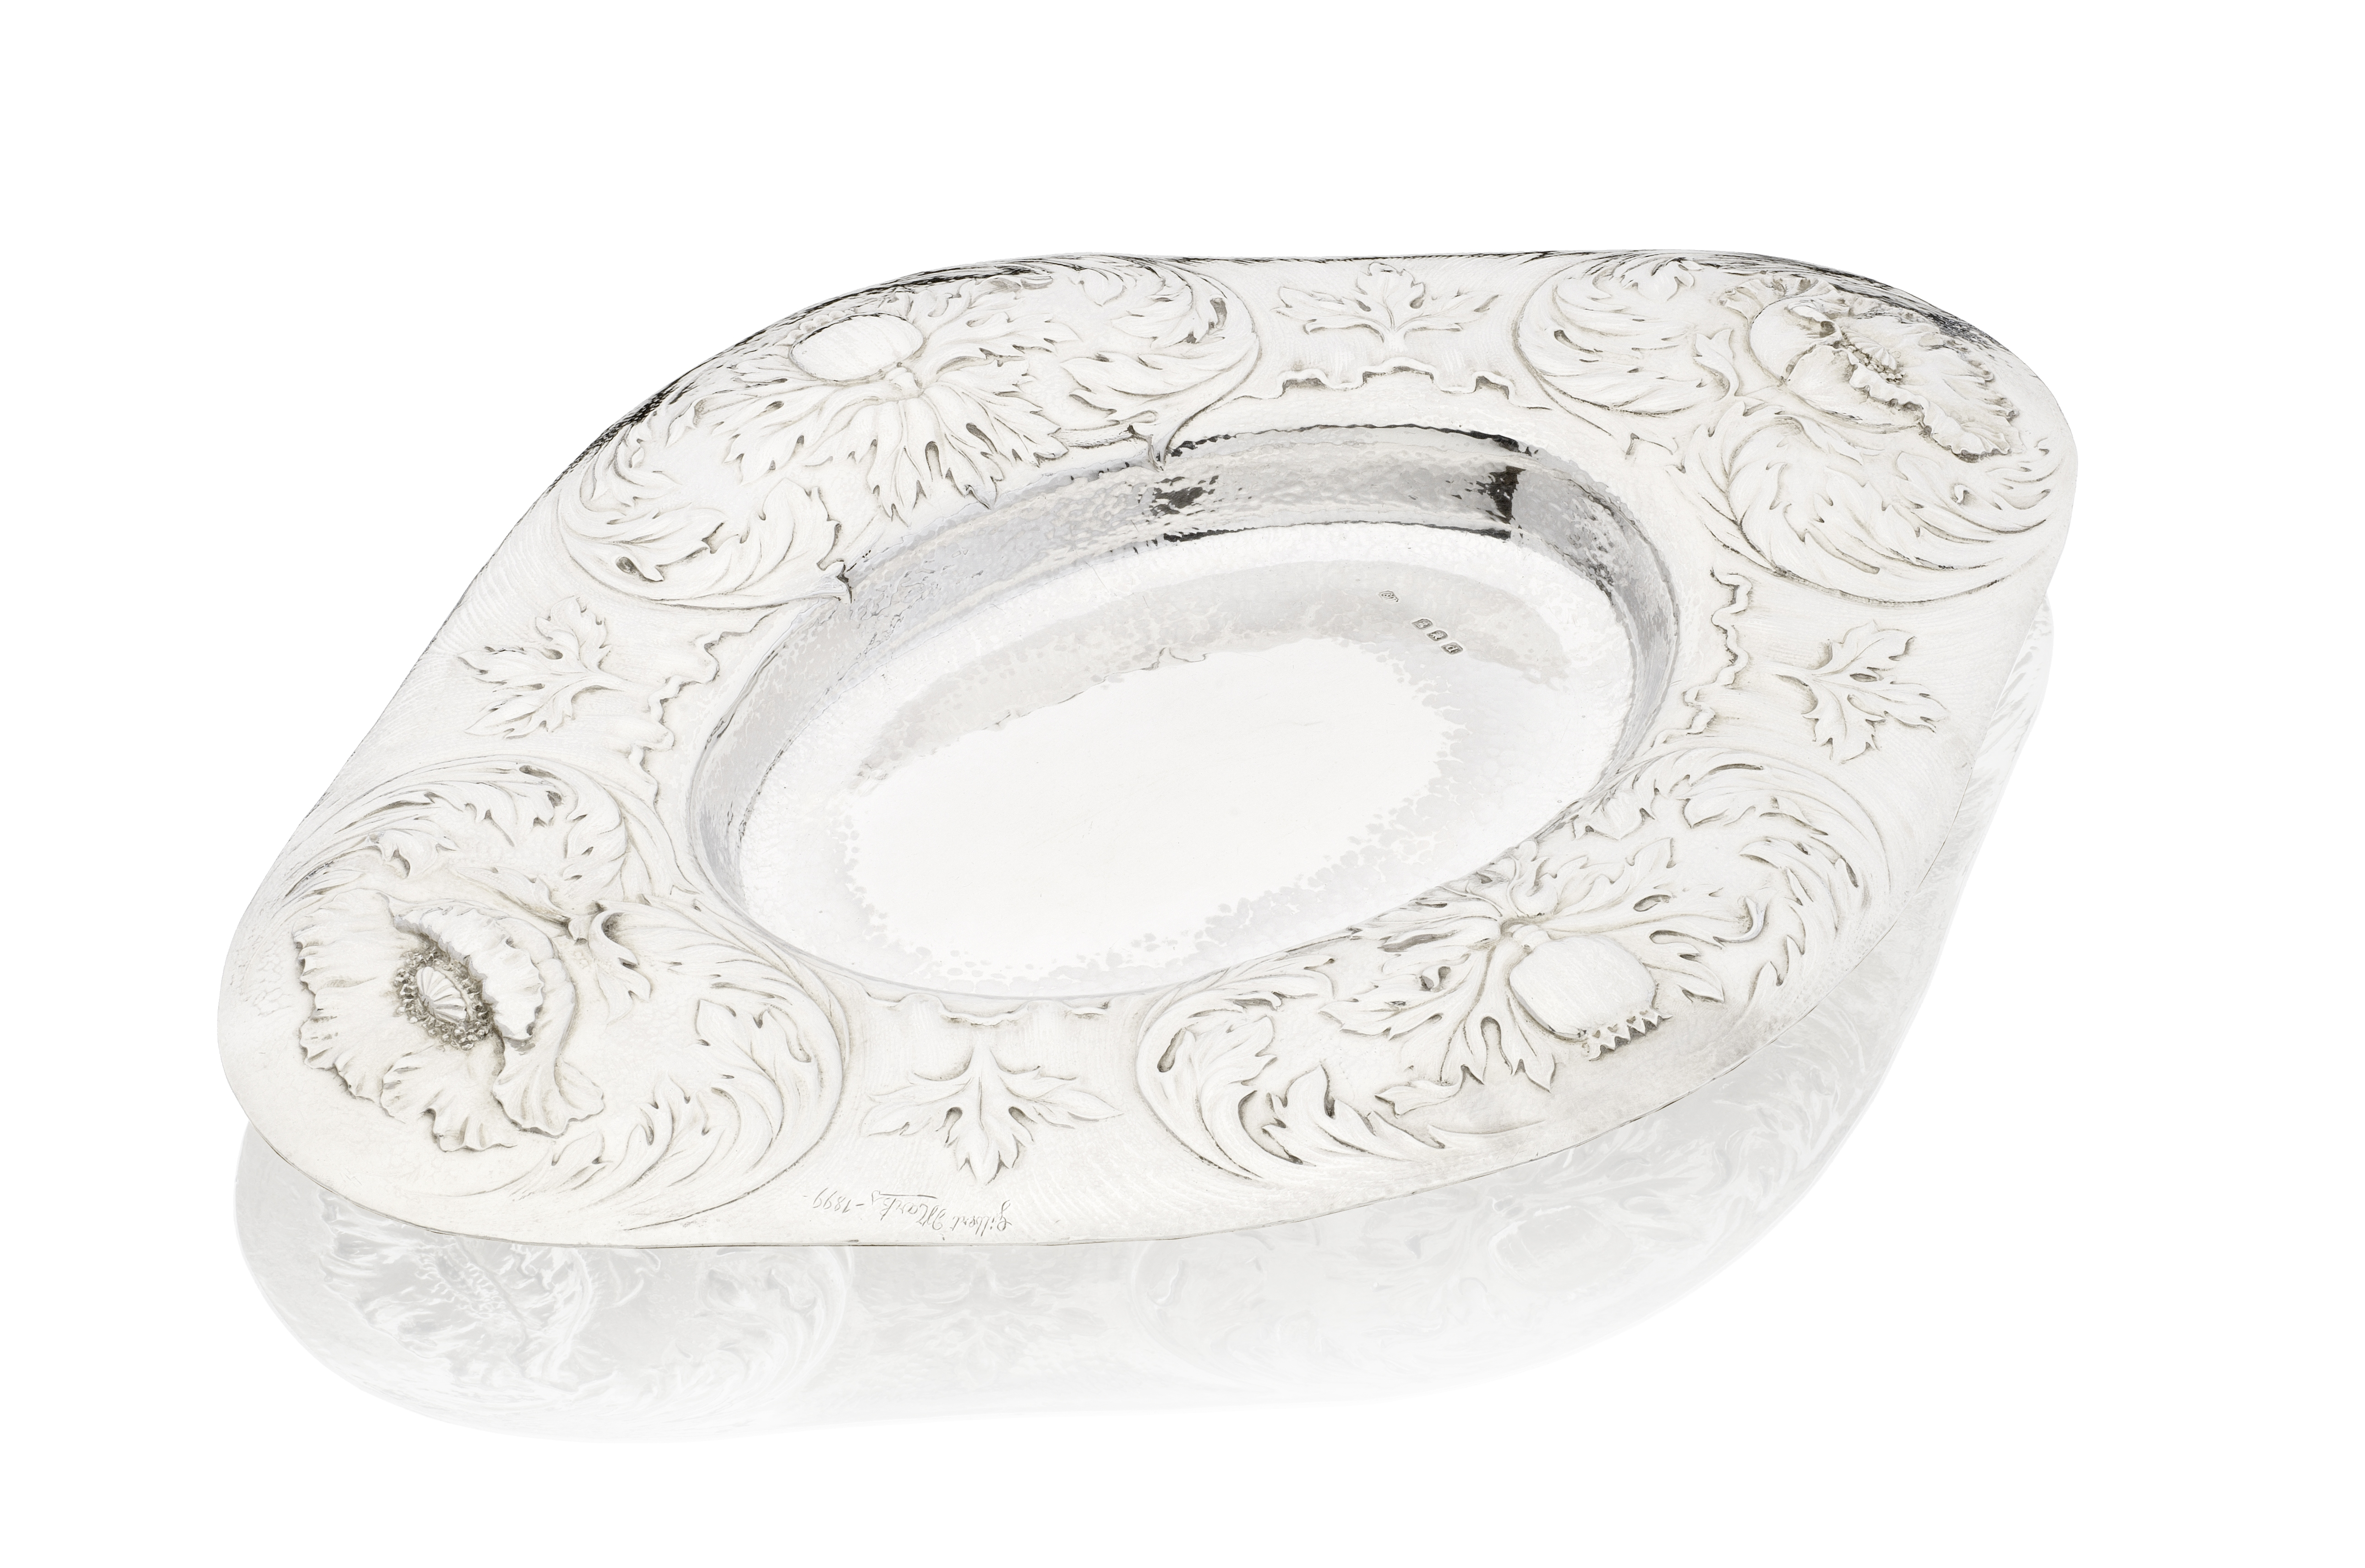 Lot 10 - A Victorian Arts and Crafts silver dish Gilbert Marks, London 1899, Britannia standard, also sign...